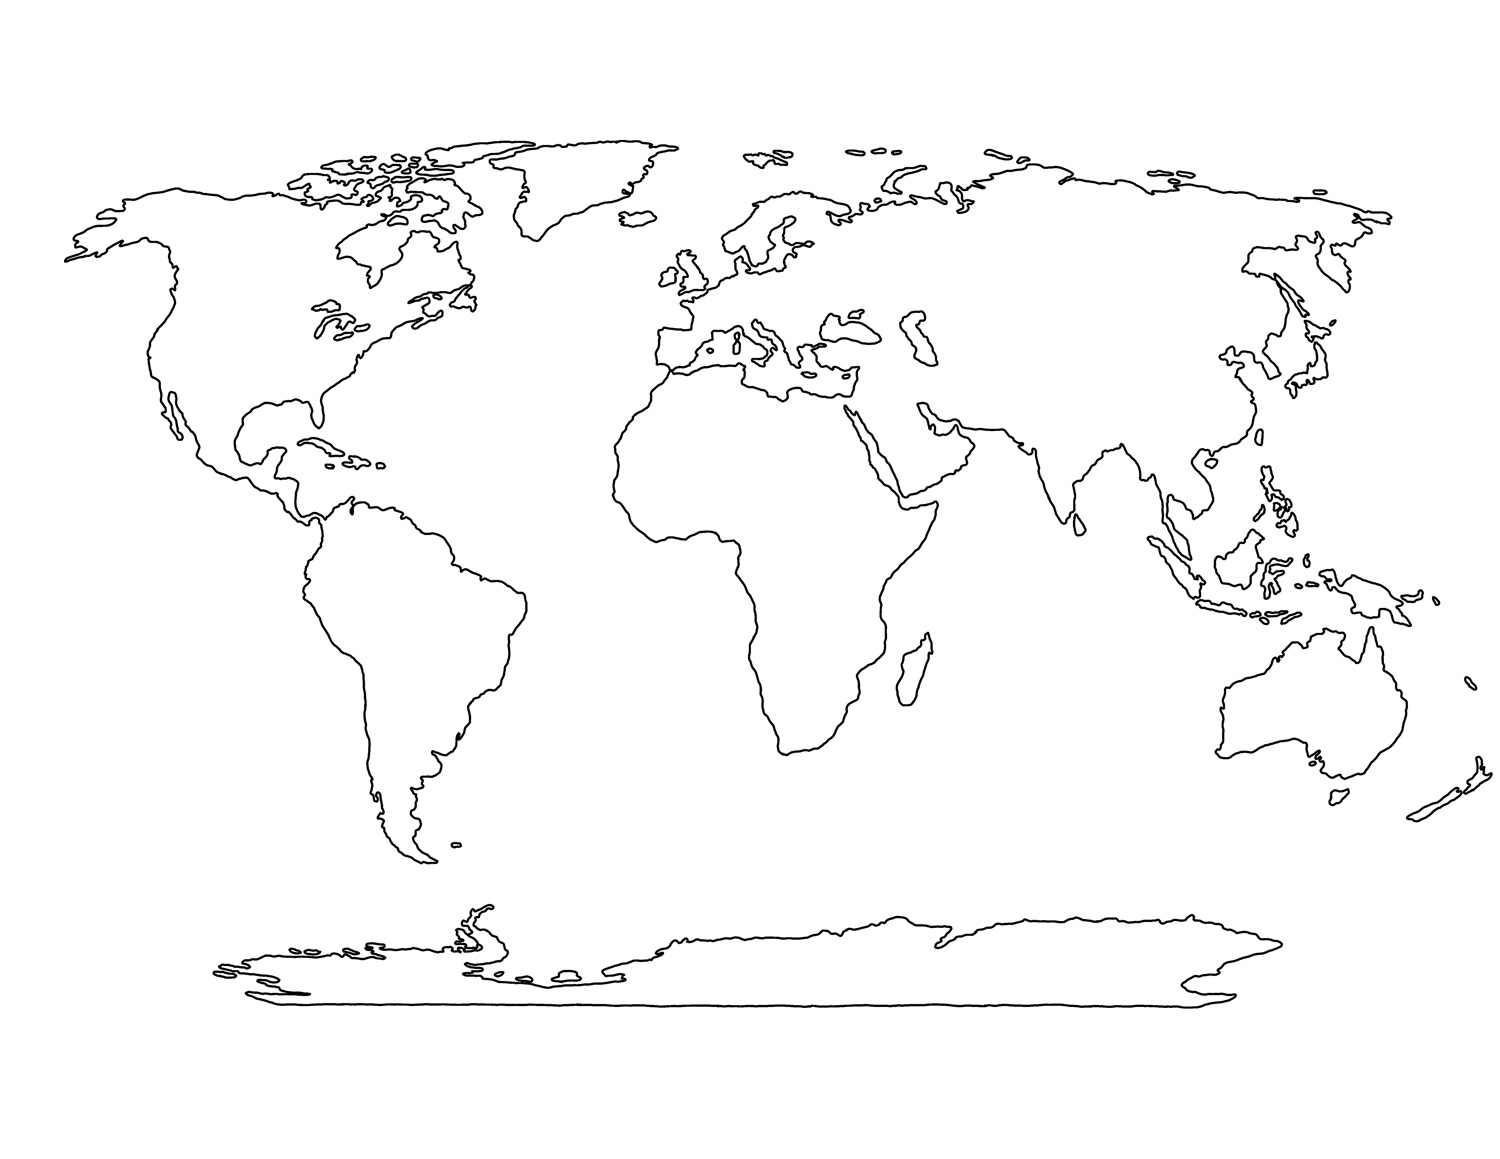 Printable Blank World Map Template For Students And Kids - World map blank for students